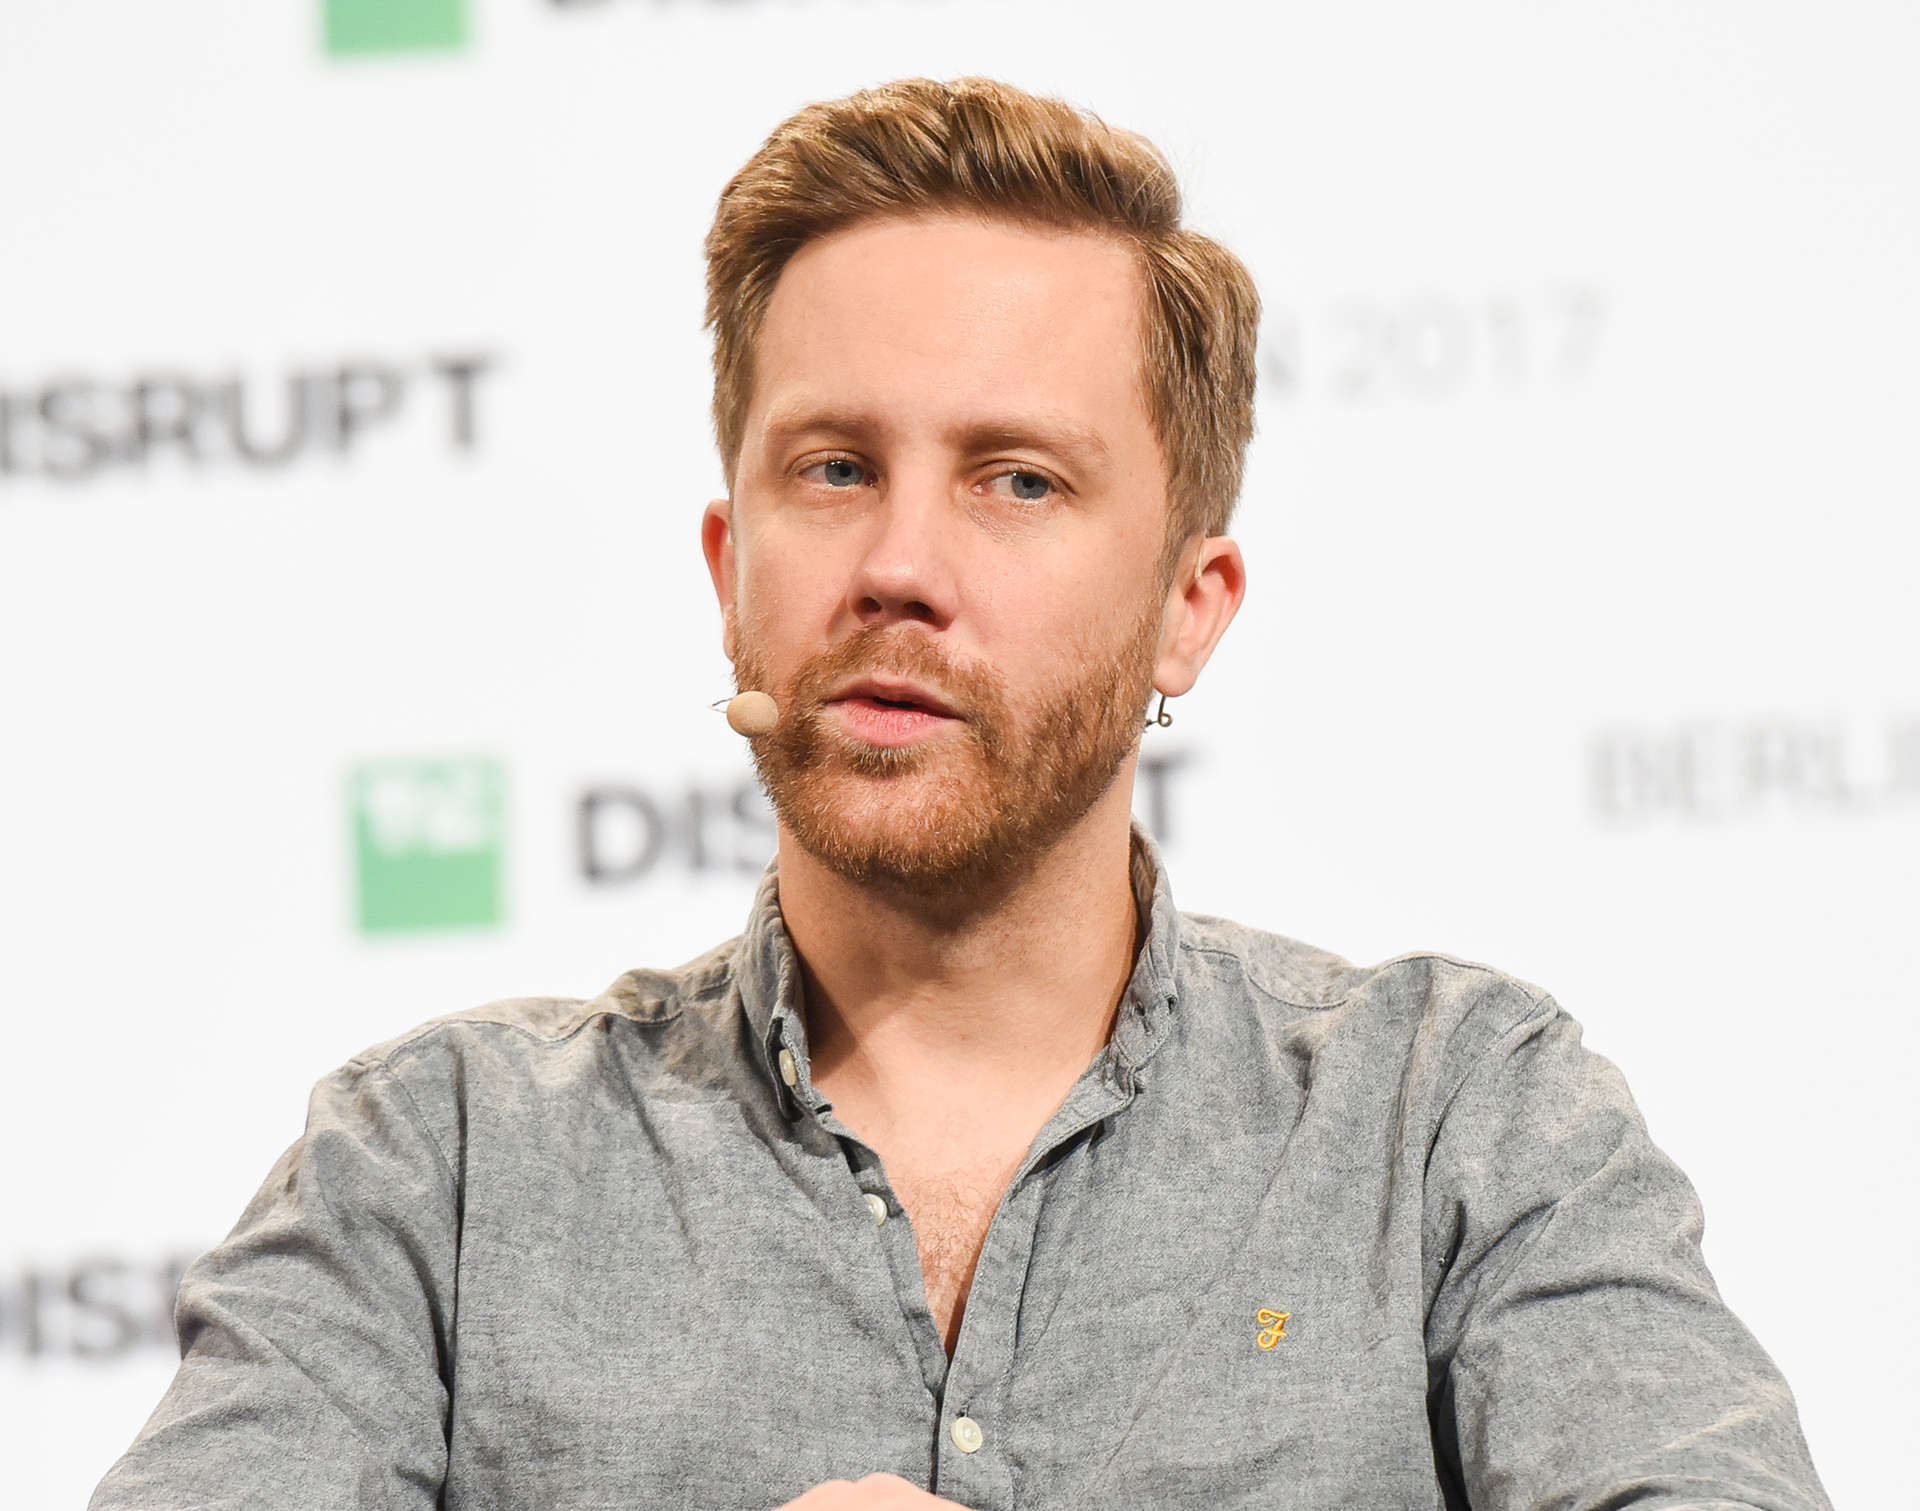 Monzo ex-CEO claims SoftBank investor picked feet and smoked in meetings